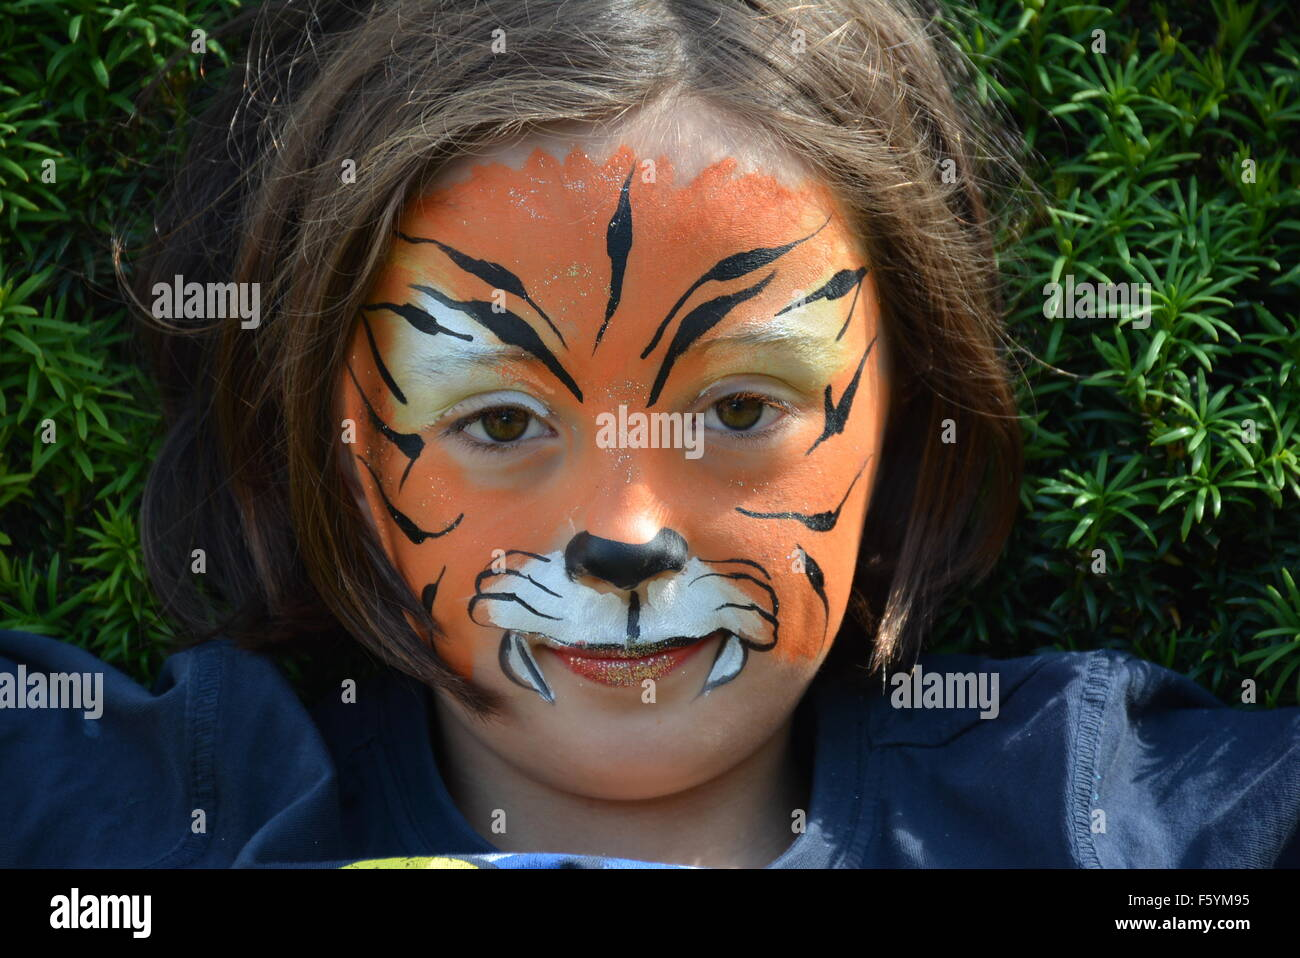 Playgrounds,kids, face painting, estates, day's out, play, kids care, schools, kids environments, children, - Stock Image